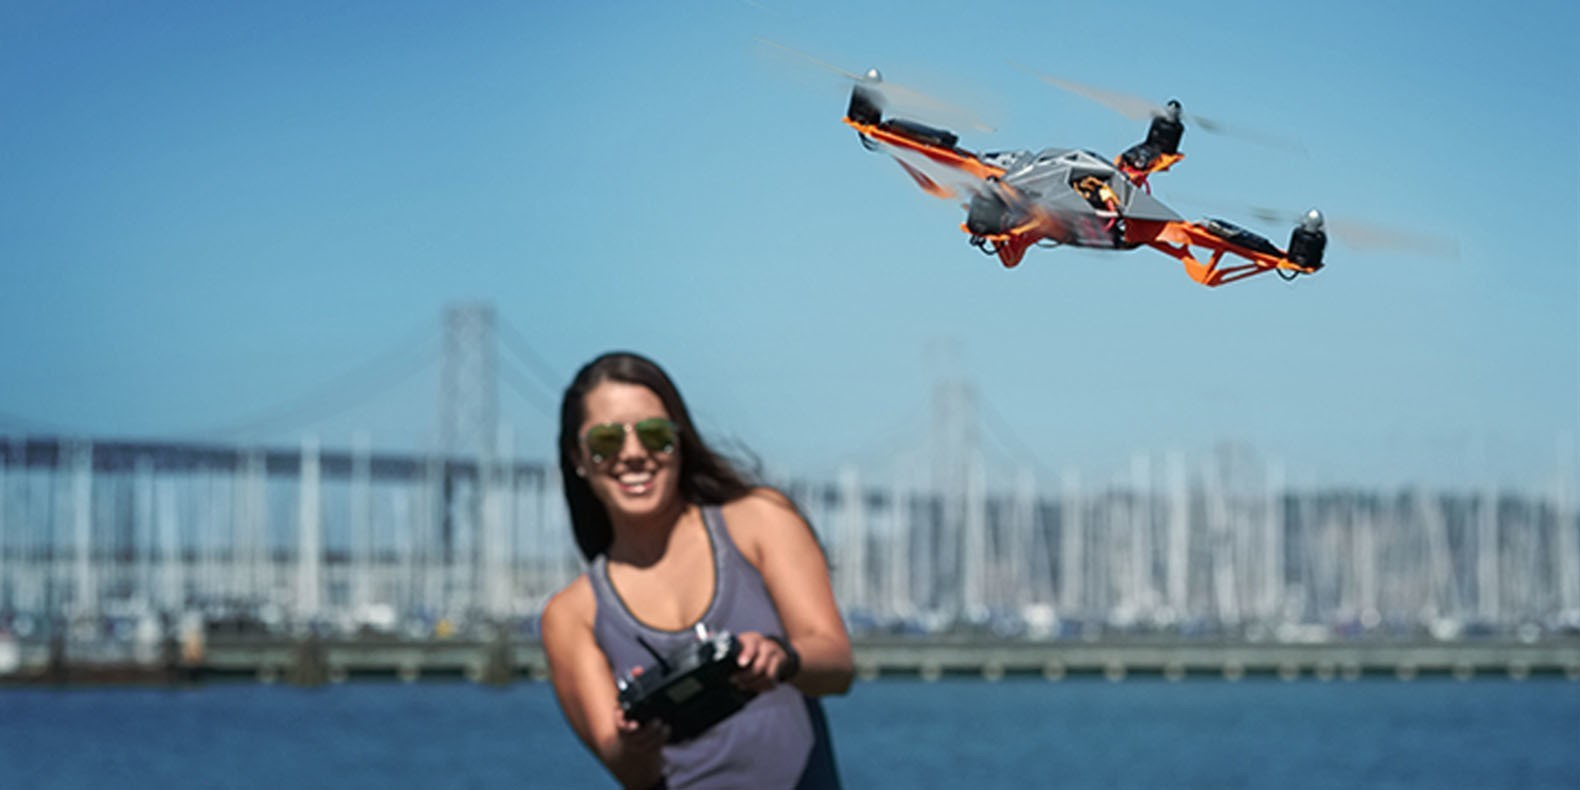 Find here a selection of the best drones 3D models to make with a 3D printer